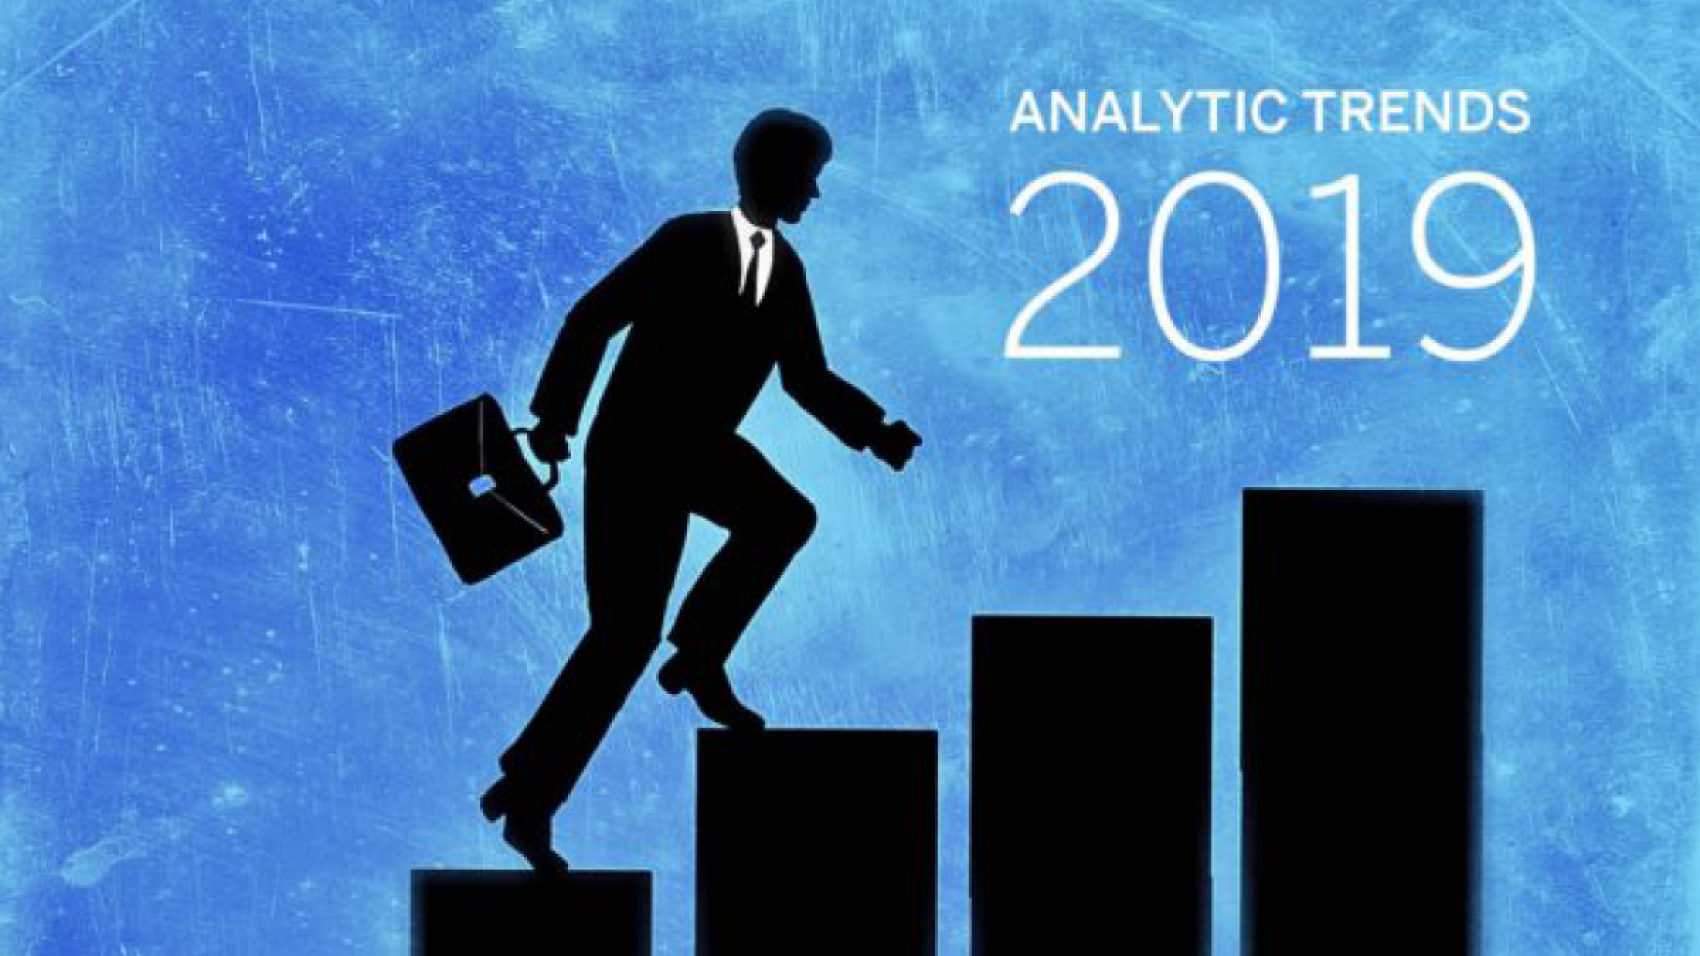 analytic-trends-2019